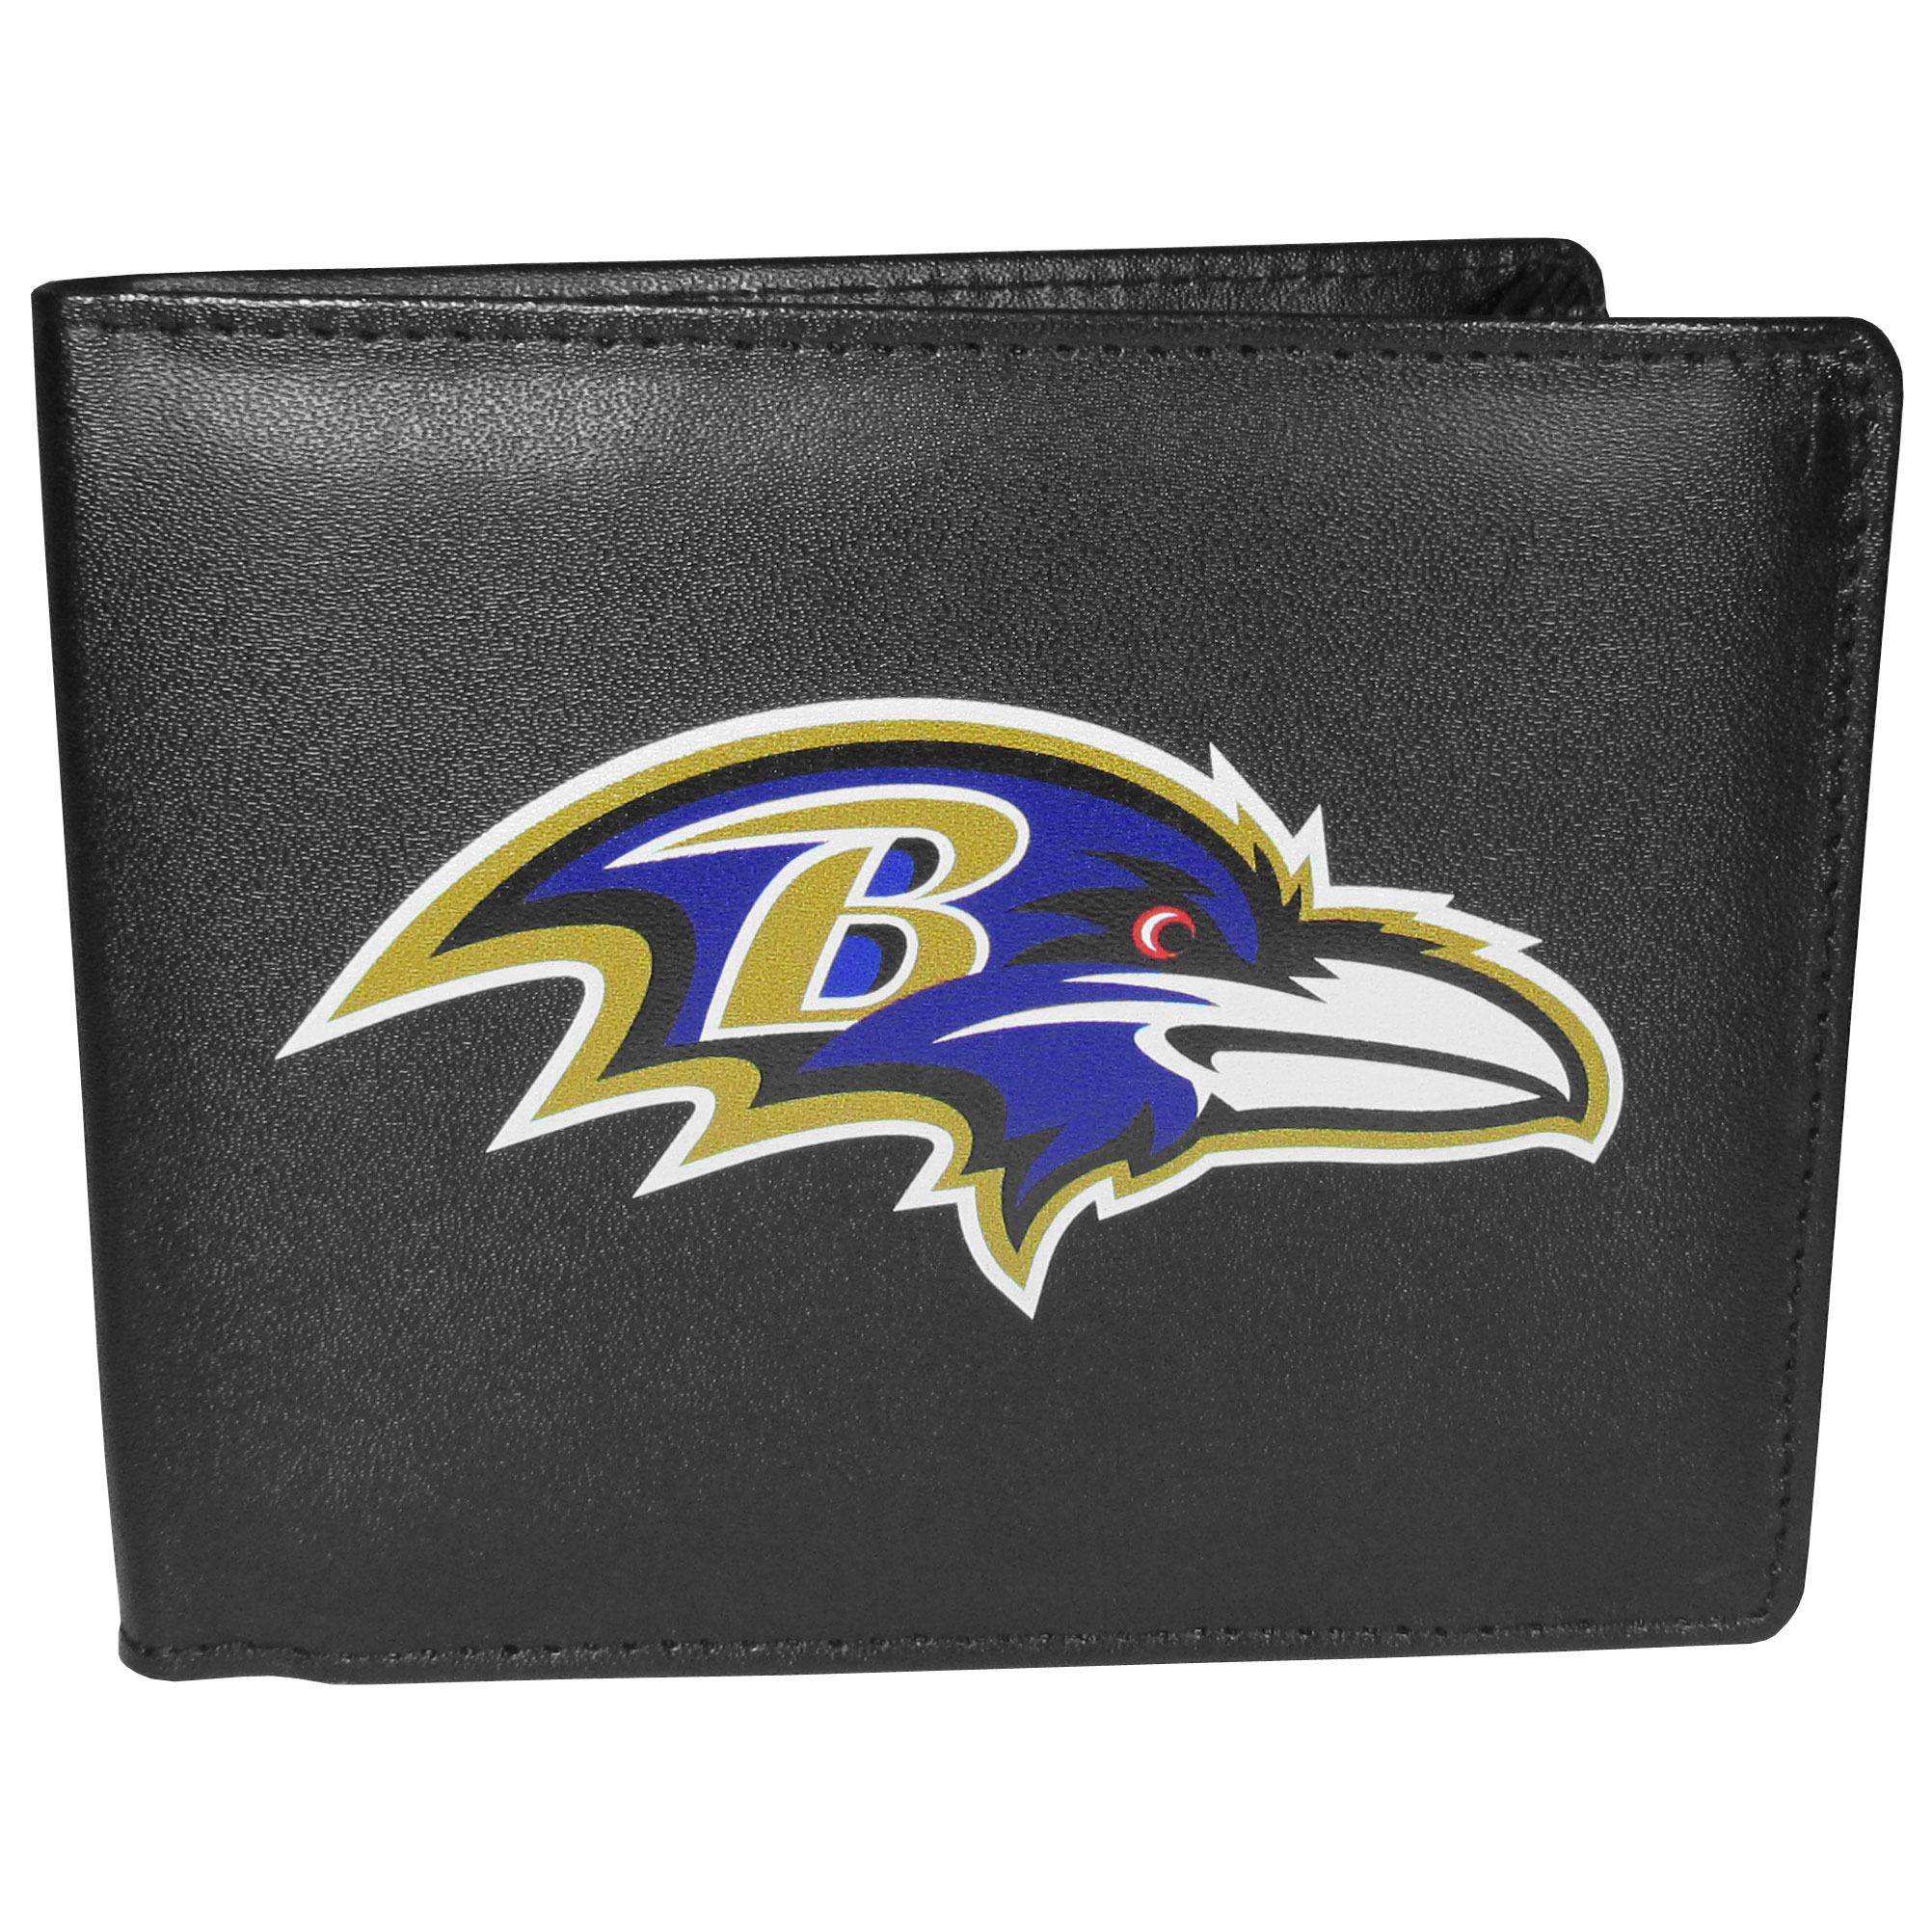 Baltimore Ravens Leather Bi-fold Wallet, Large Logo - Our classic fine leather bi-fold wallet is meticulously crafted with genuine leather that will age beautifully so you will have a quality wallet for years to come. The wallet opens to a large, billfold pocket and numerous credit card slots and has a convenient windowed ID slot. The front of the wallet features an extra large Baltimore Ravens printed logo.